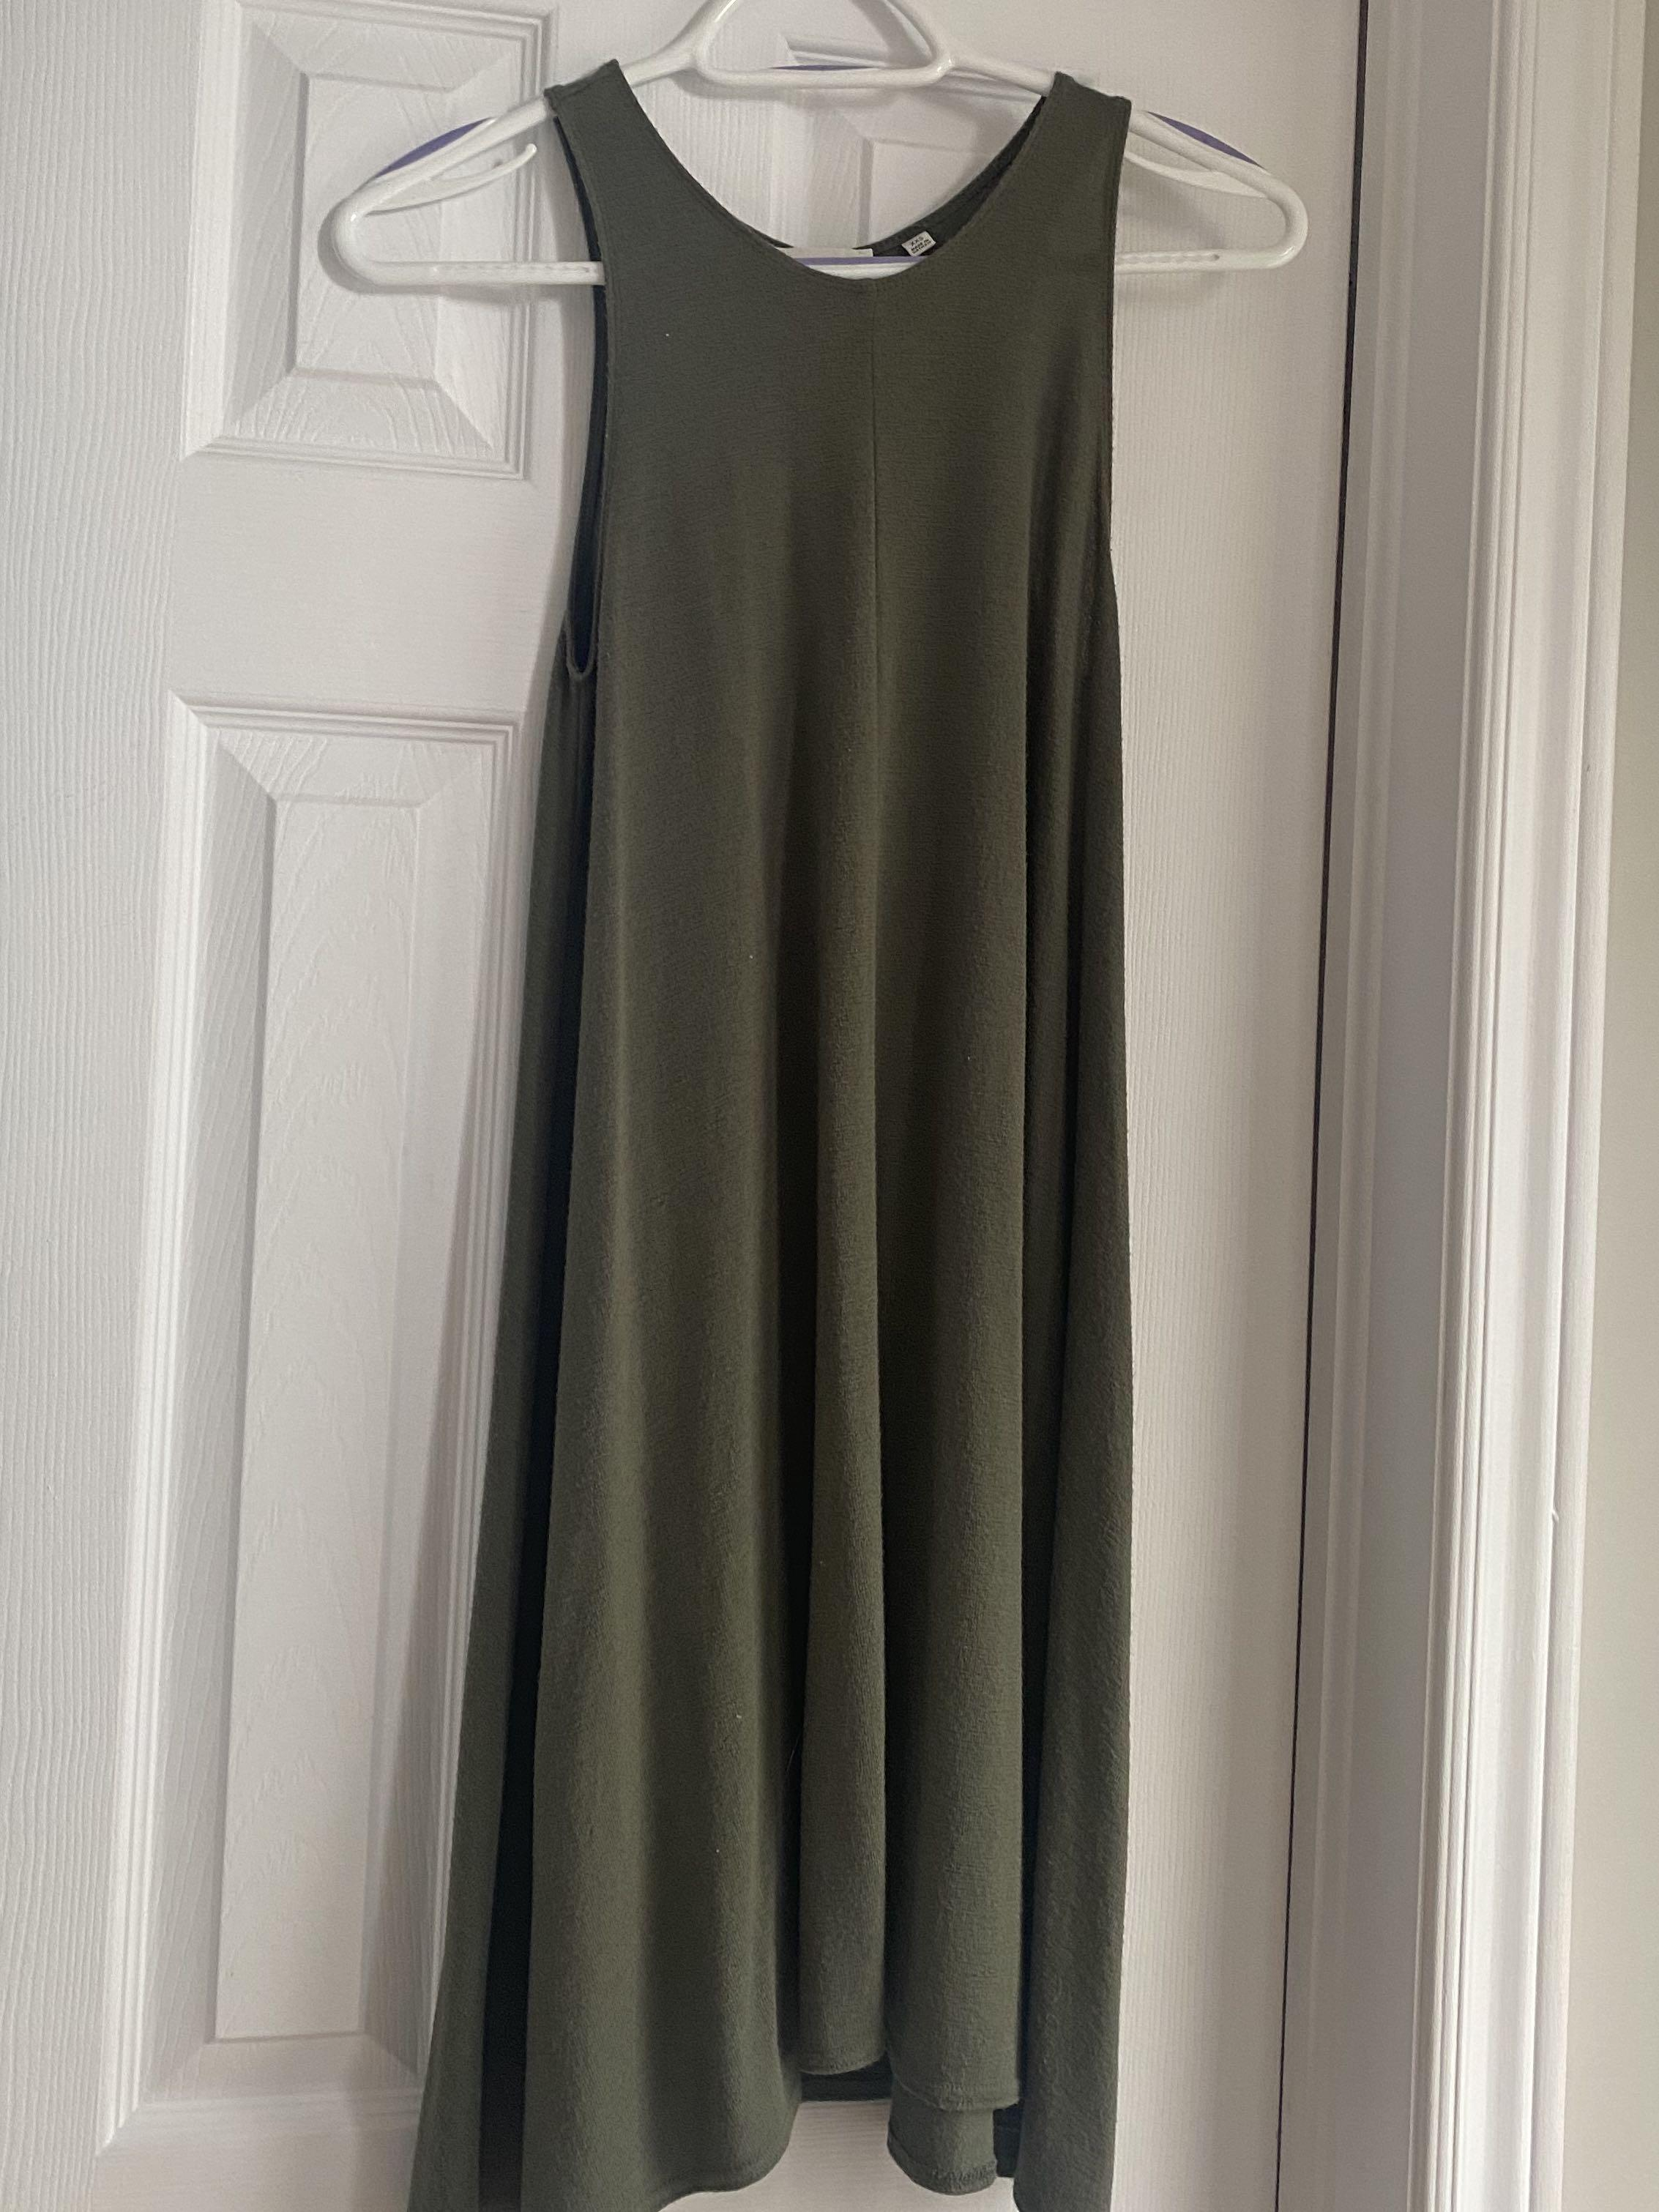 Aritzia Wilfred Free Dress - Olive Green XXS Similar to Pensacola and Dunes dresses